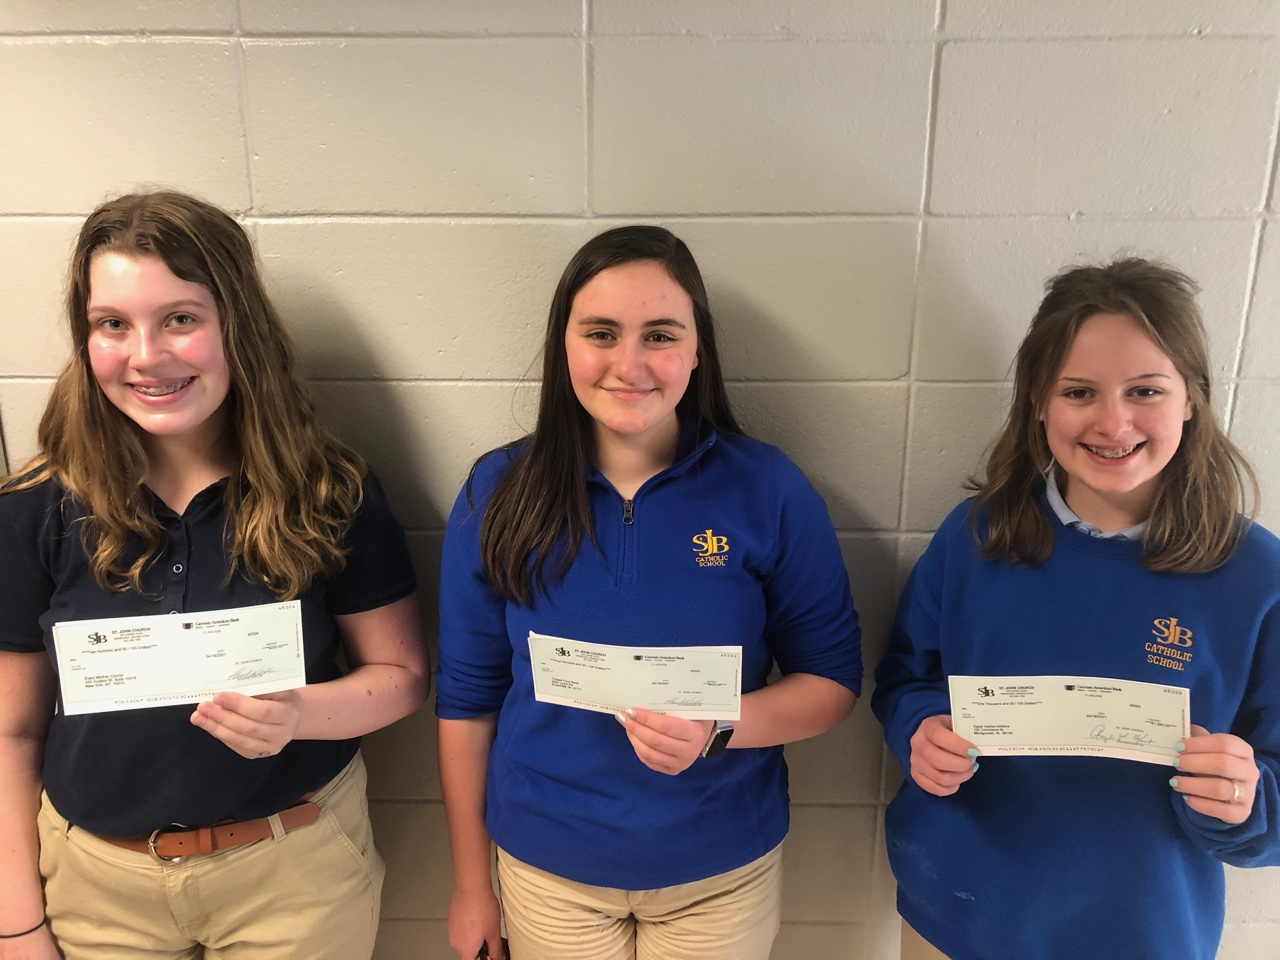 The winners of St. John the Baptist School's Eighth Grade Speech Madness competition are third-place winner Lyla Wisher, left, second-place winner Lyra Sagez and first-place winner Margaret Janney. The girls are shown holding the checks to be donated to the charities of their choice. Submitted photo